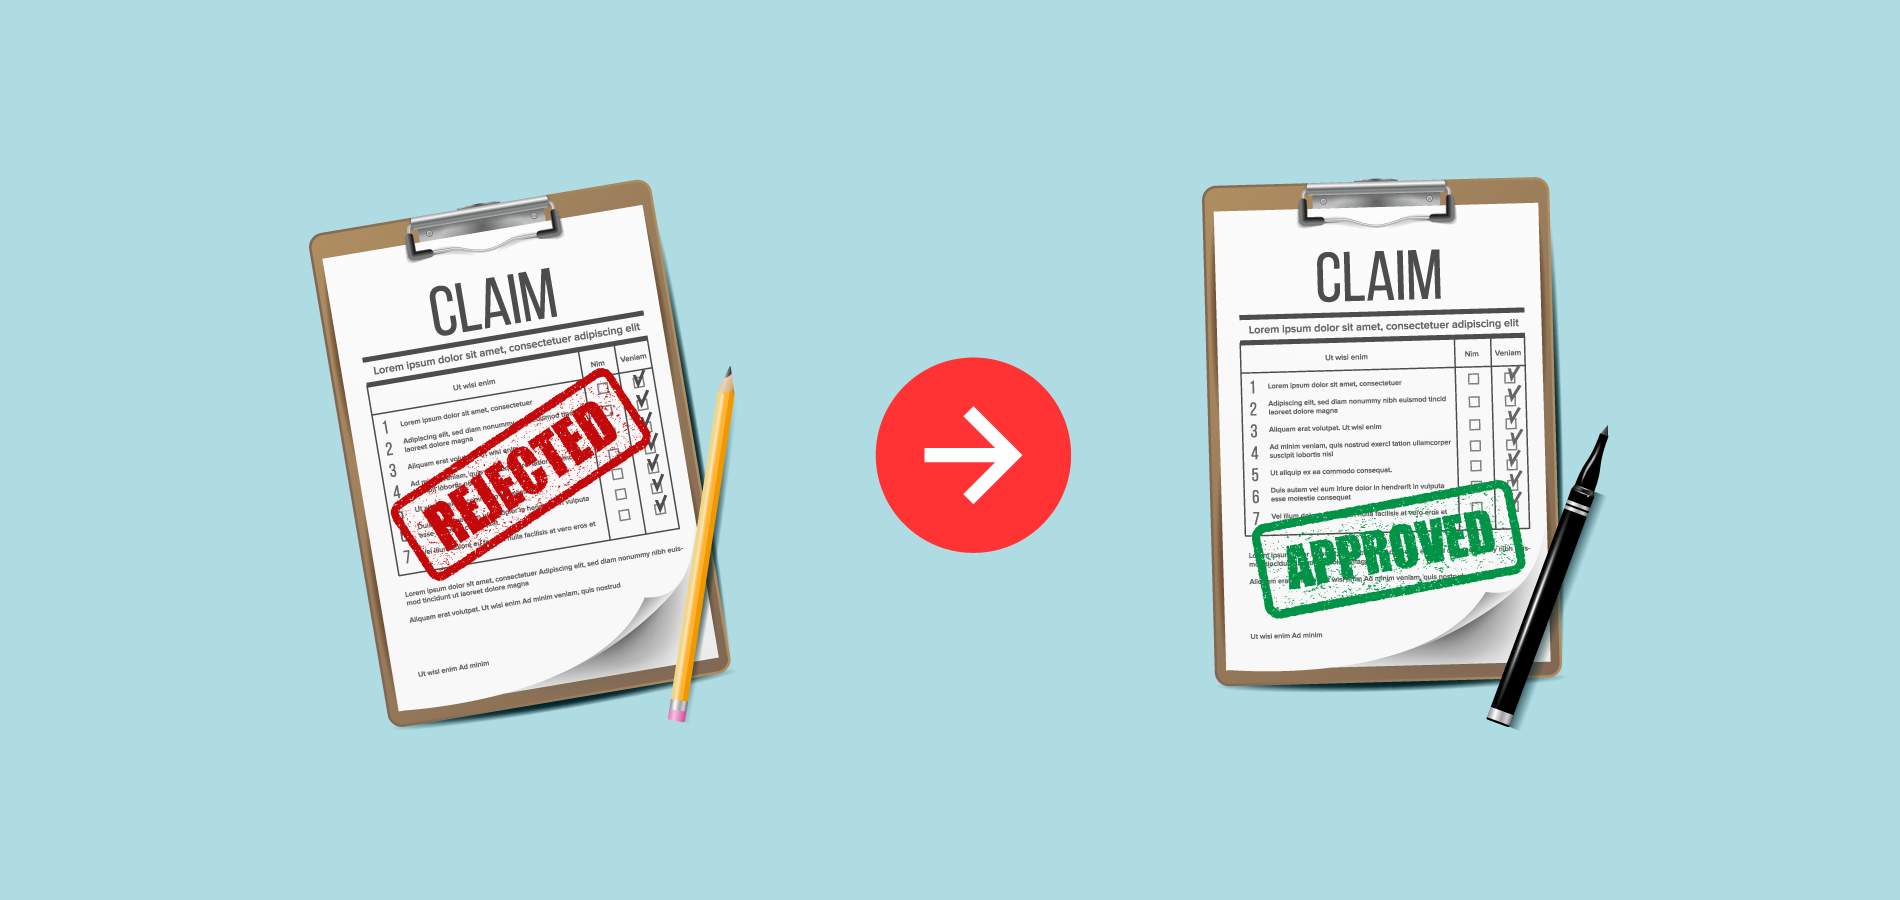 Top 9 reasons HSA claims are rejected  and what you can do